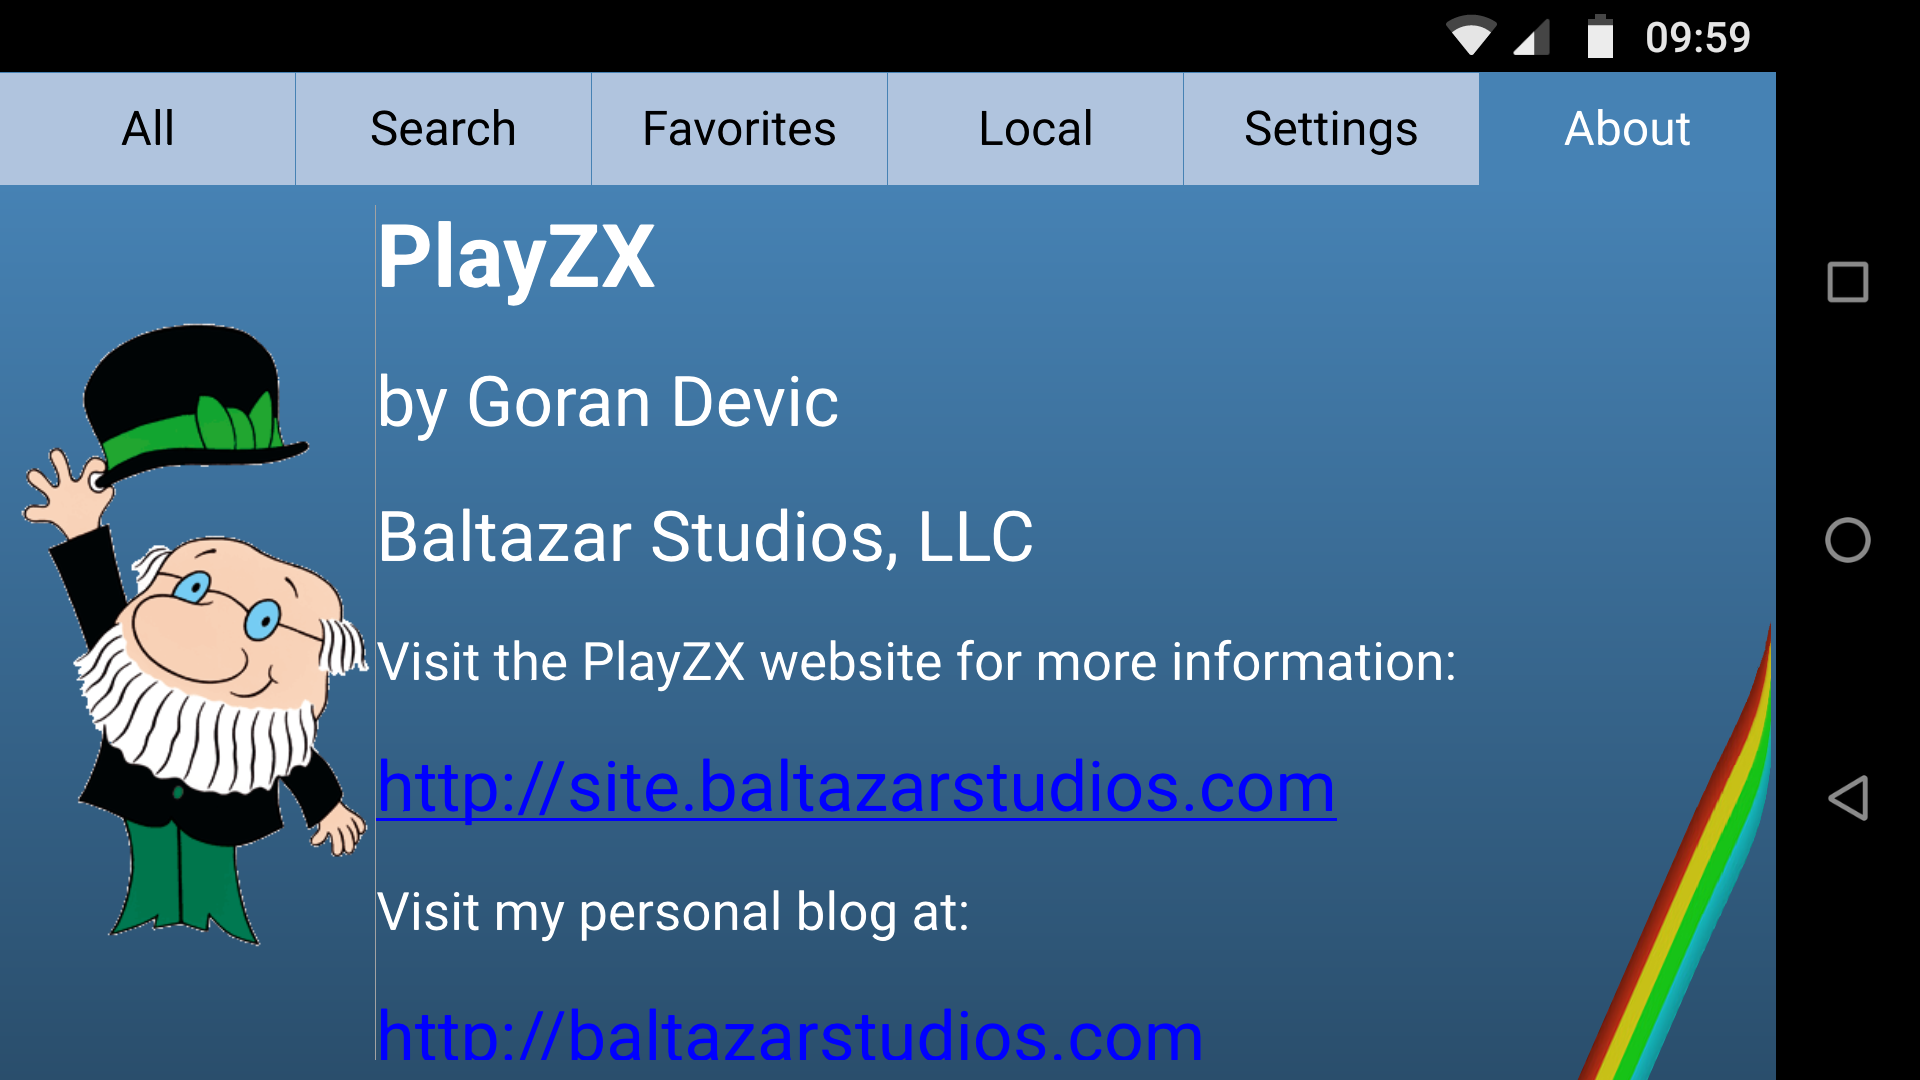 About PlayZX